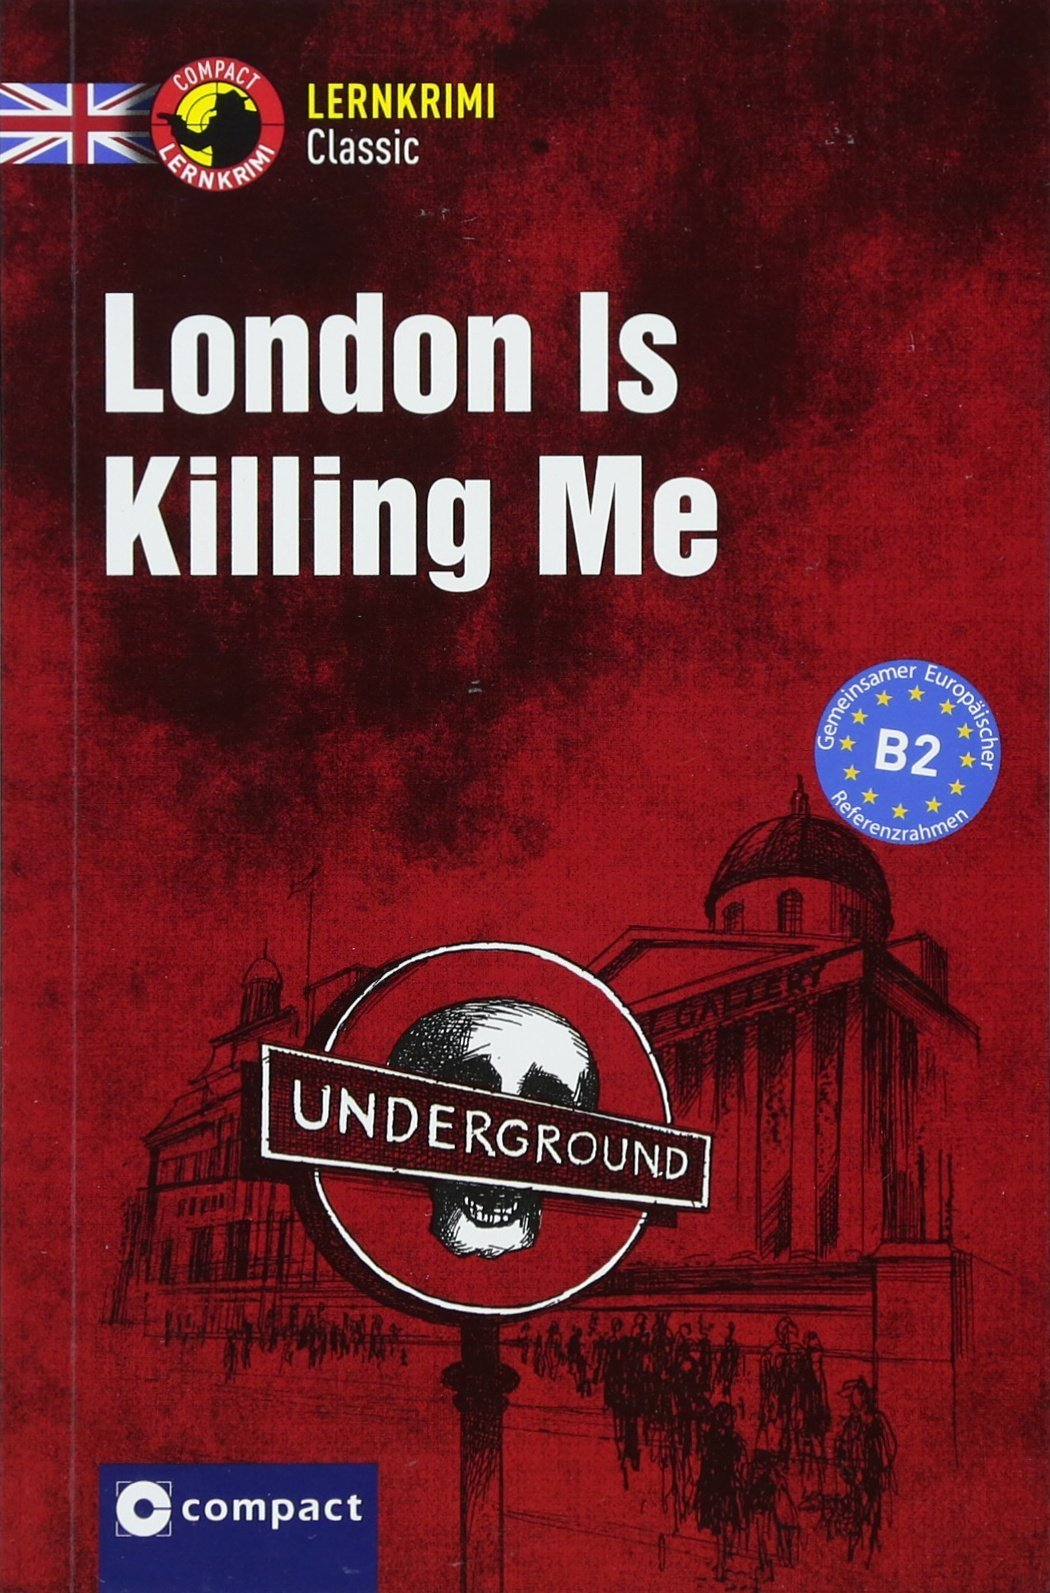 London Is Killing Me: Lernkrimi Classic Englisch B2